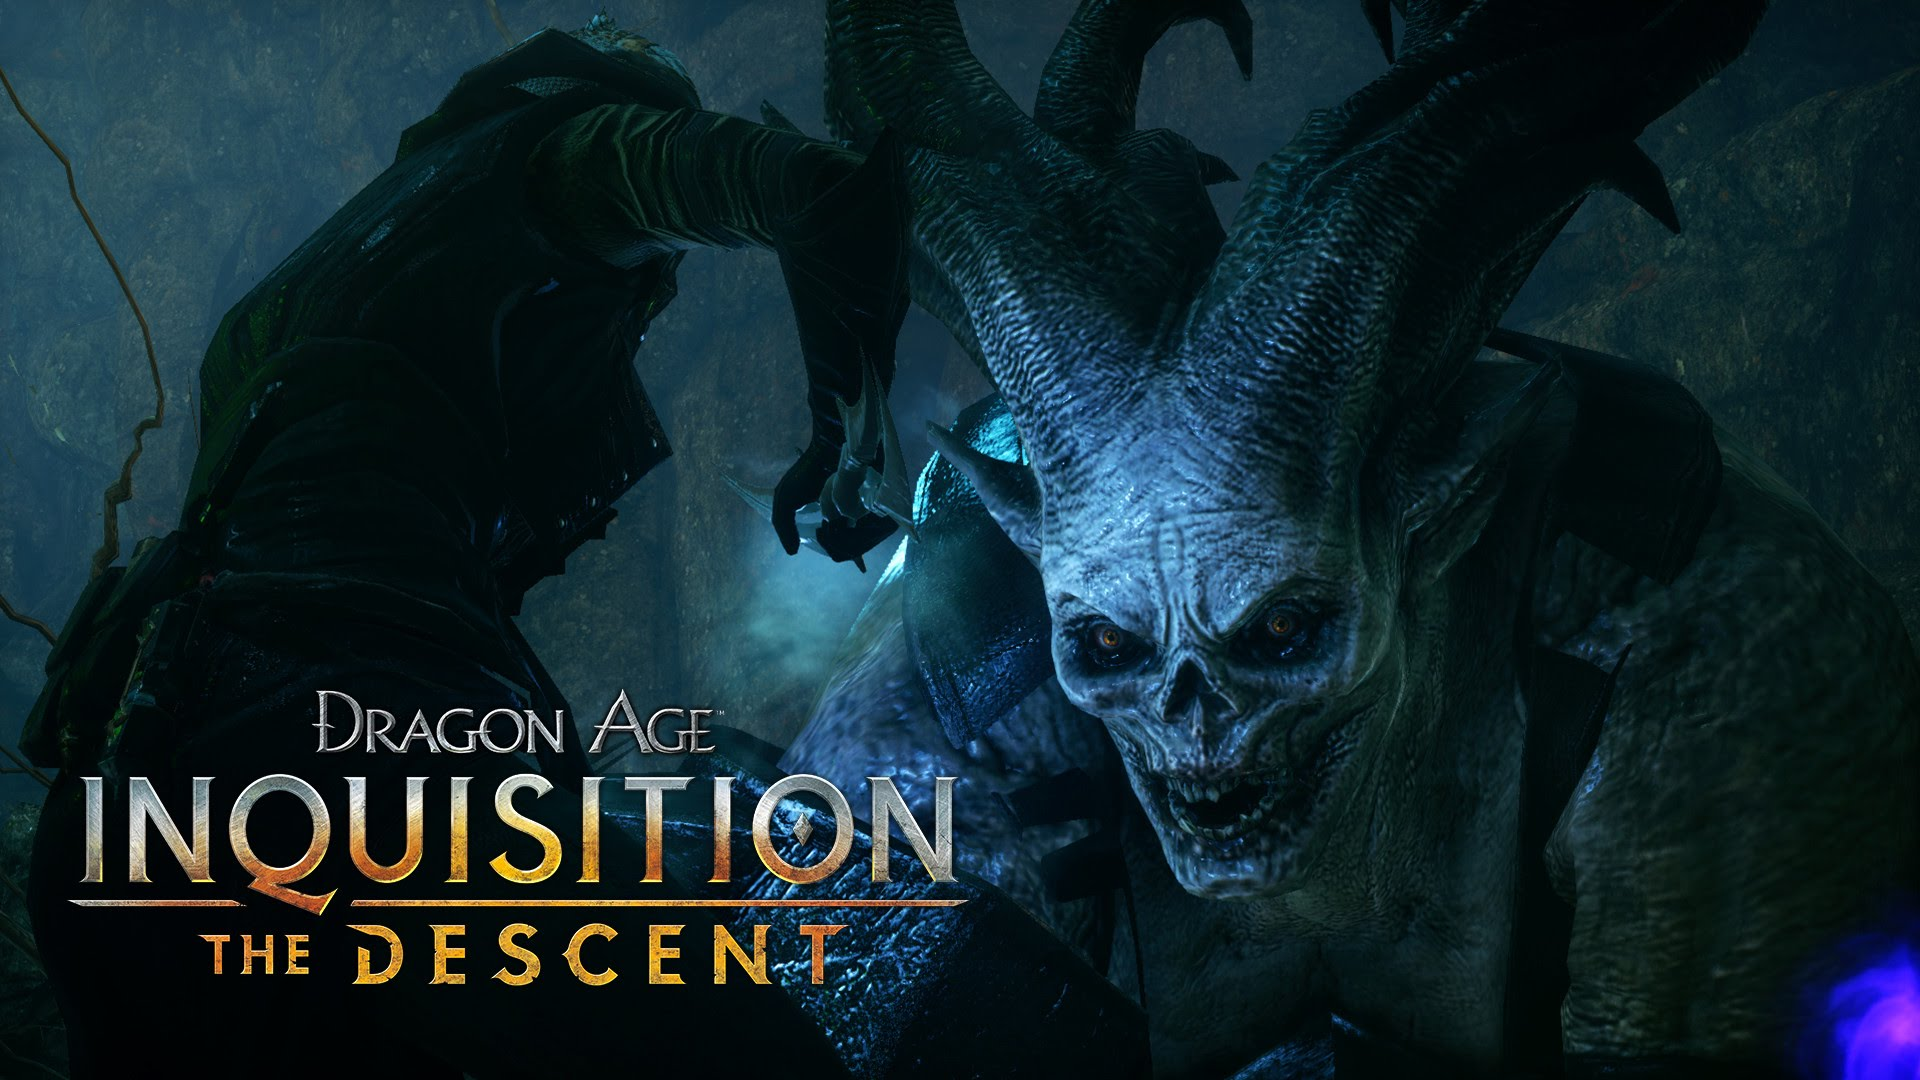 DRAGON AGE™: INQUISITION Official Trailer – The Descent (DLC)